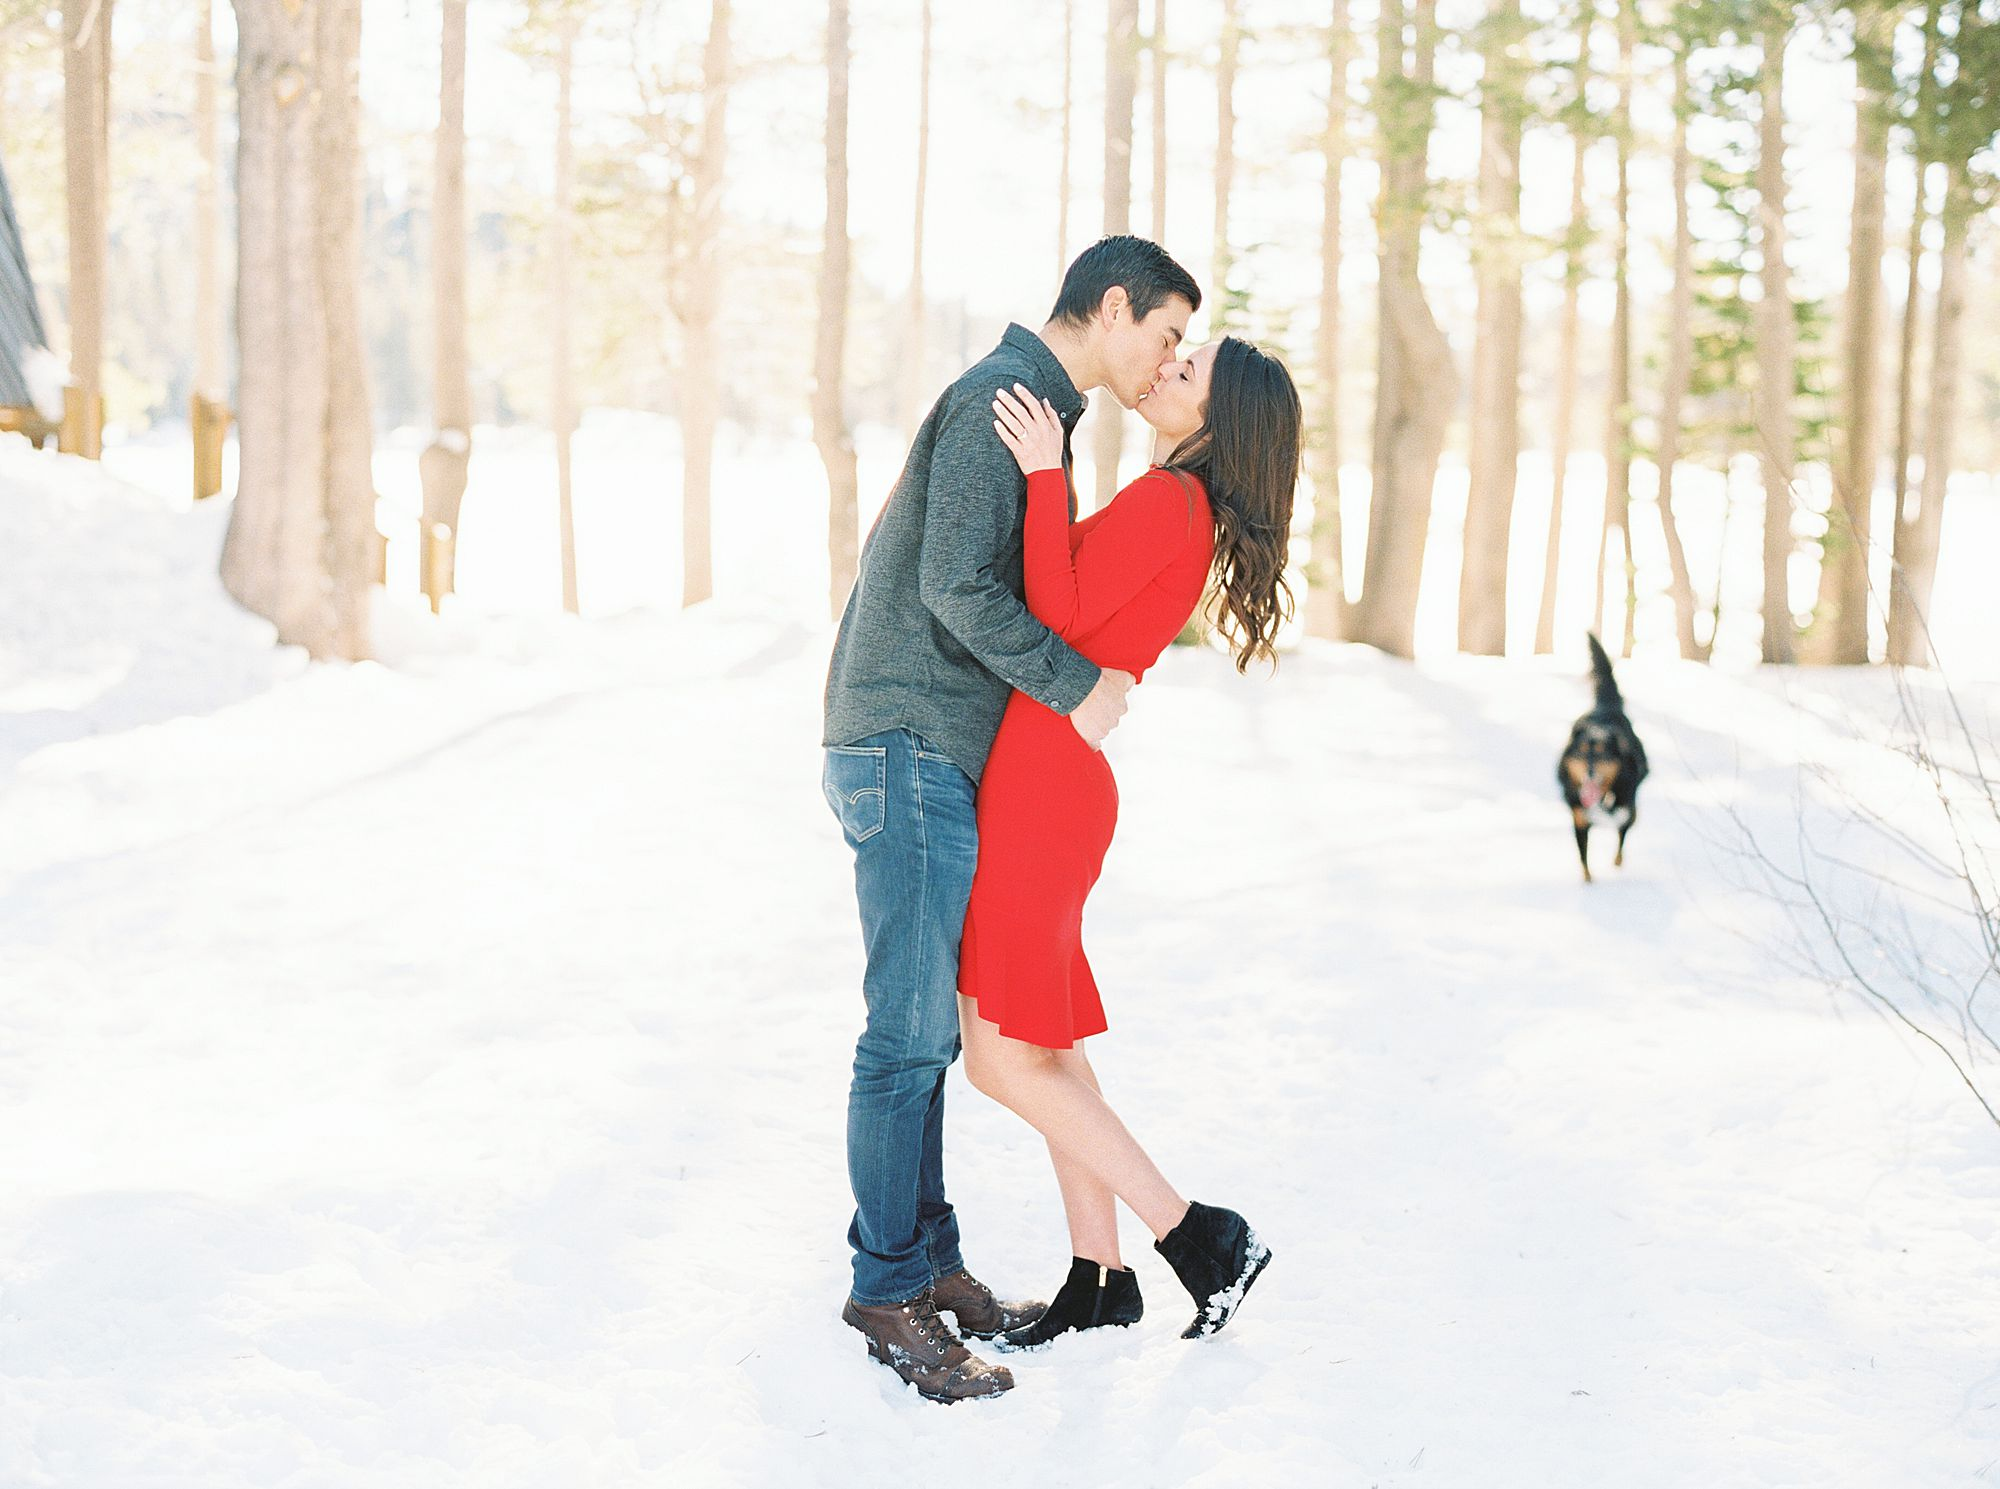 Snowy Tahoe Engagement Session - Alex and Kevin - Ashley Baumgartner - Tahoe Engagement Session - Tahoe Wedding Photographer - Tahoe Engagement Photos - Snow Engagement Photos_0028.jpg